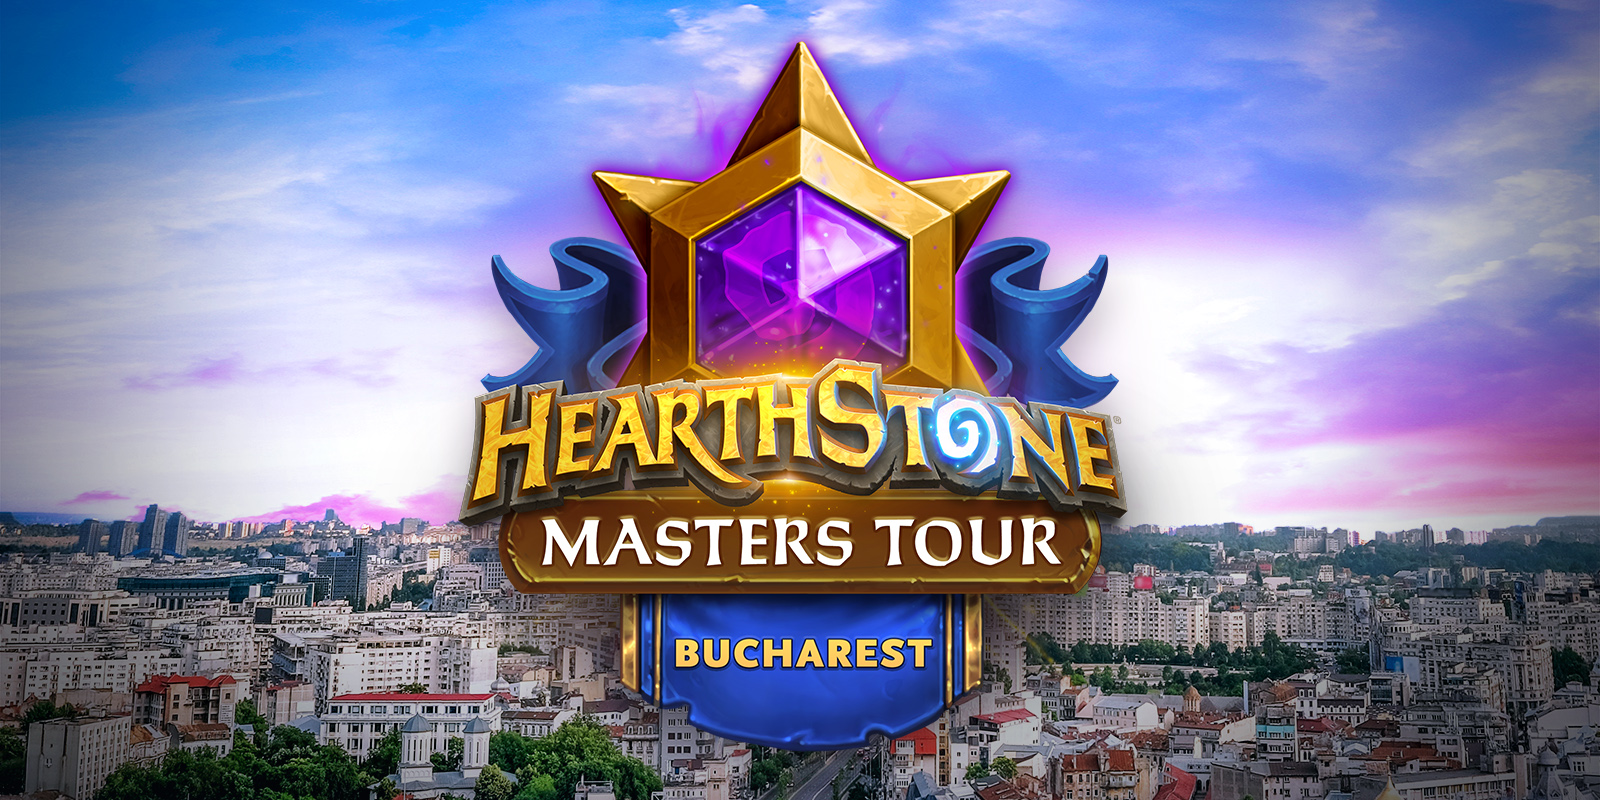 Announcing Masters Tour Bucharest - Hearthstone